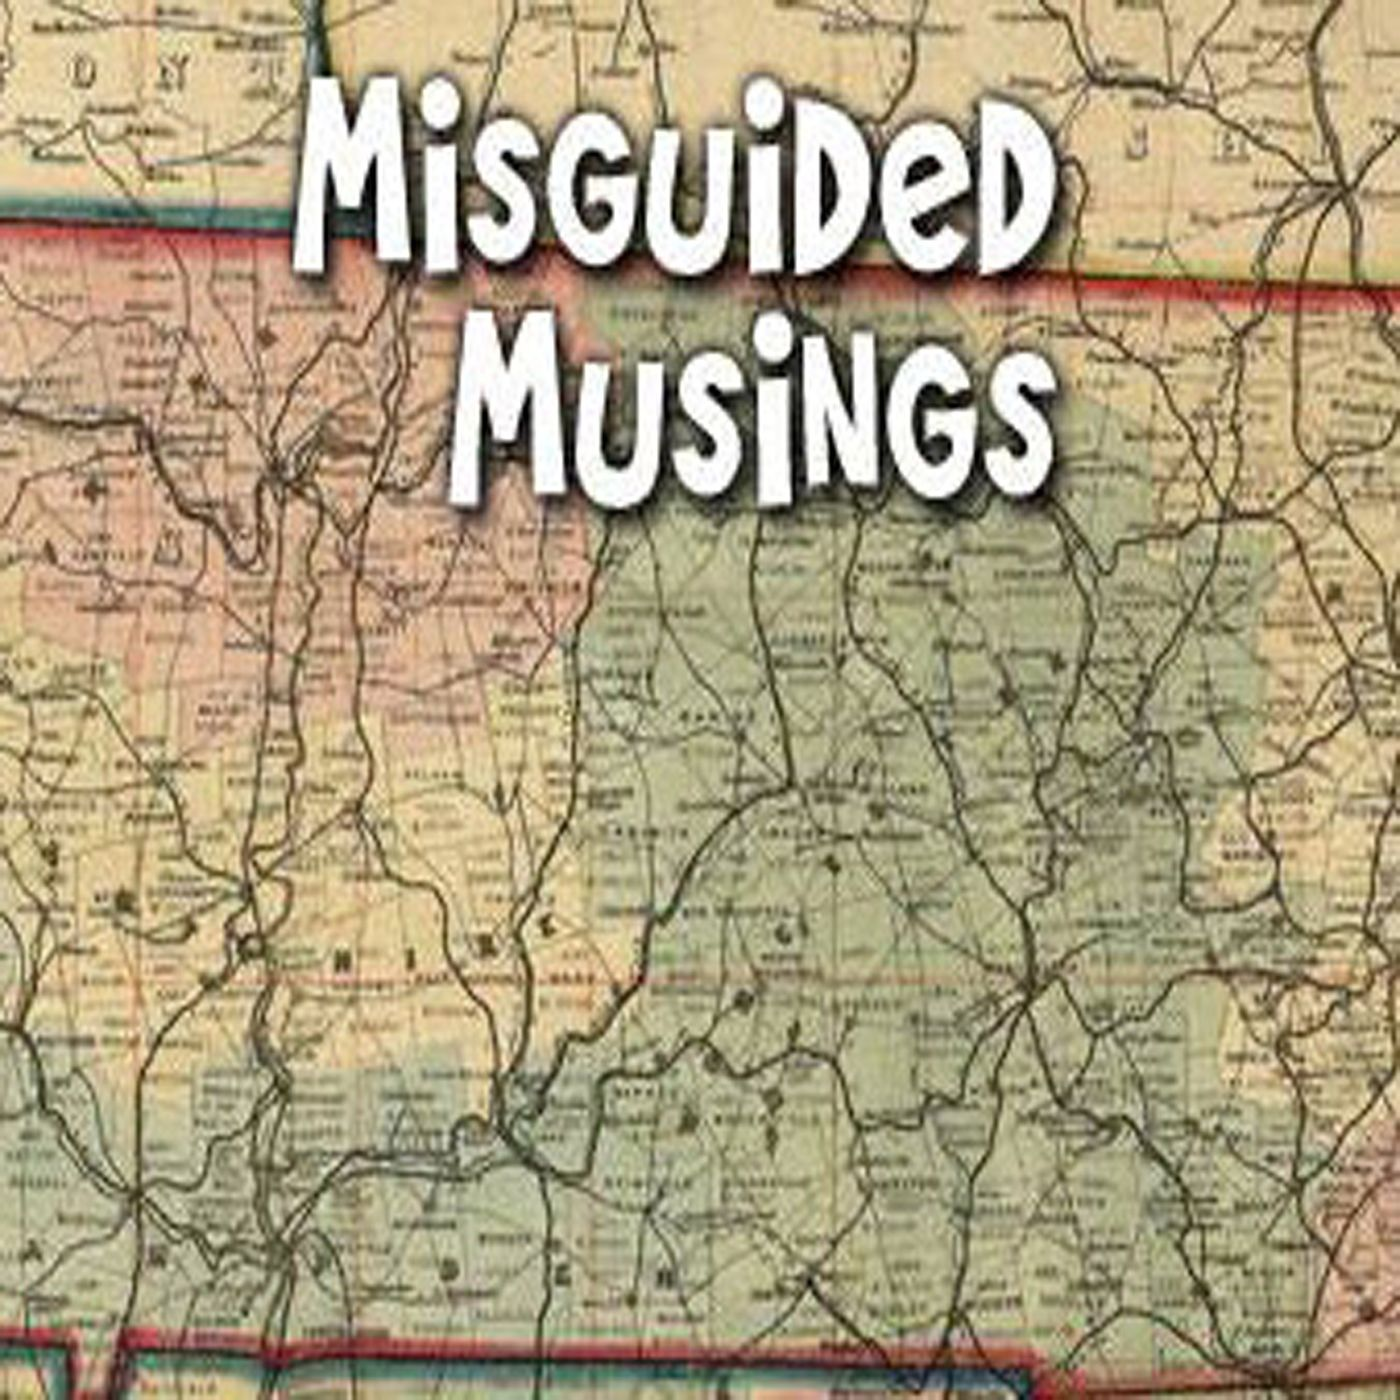 Misguided Musings